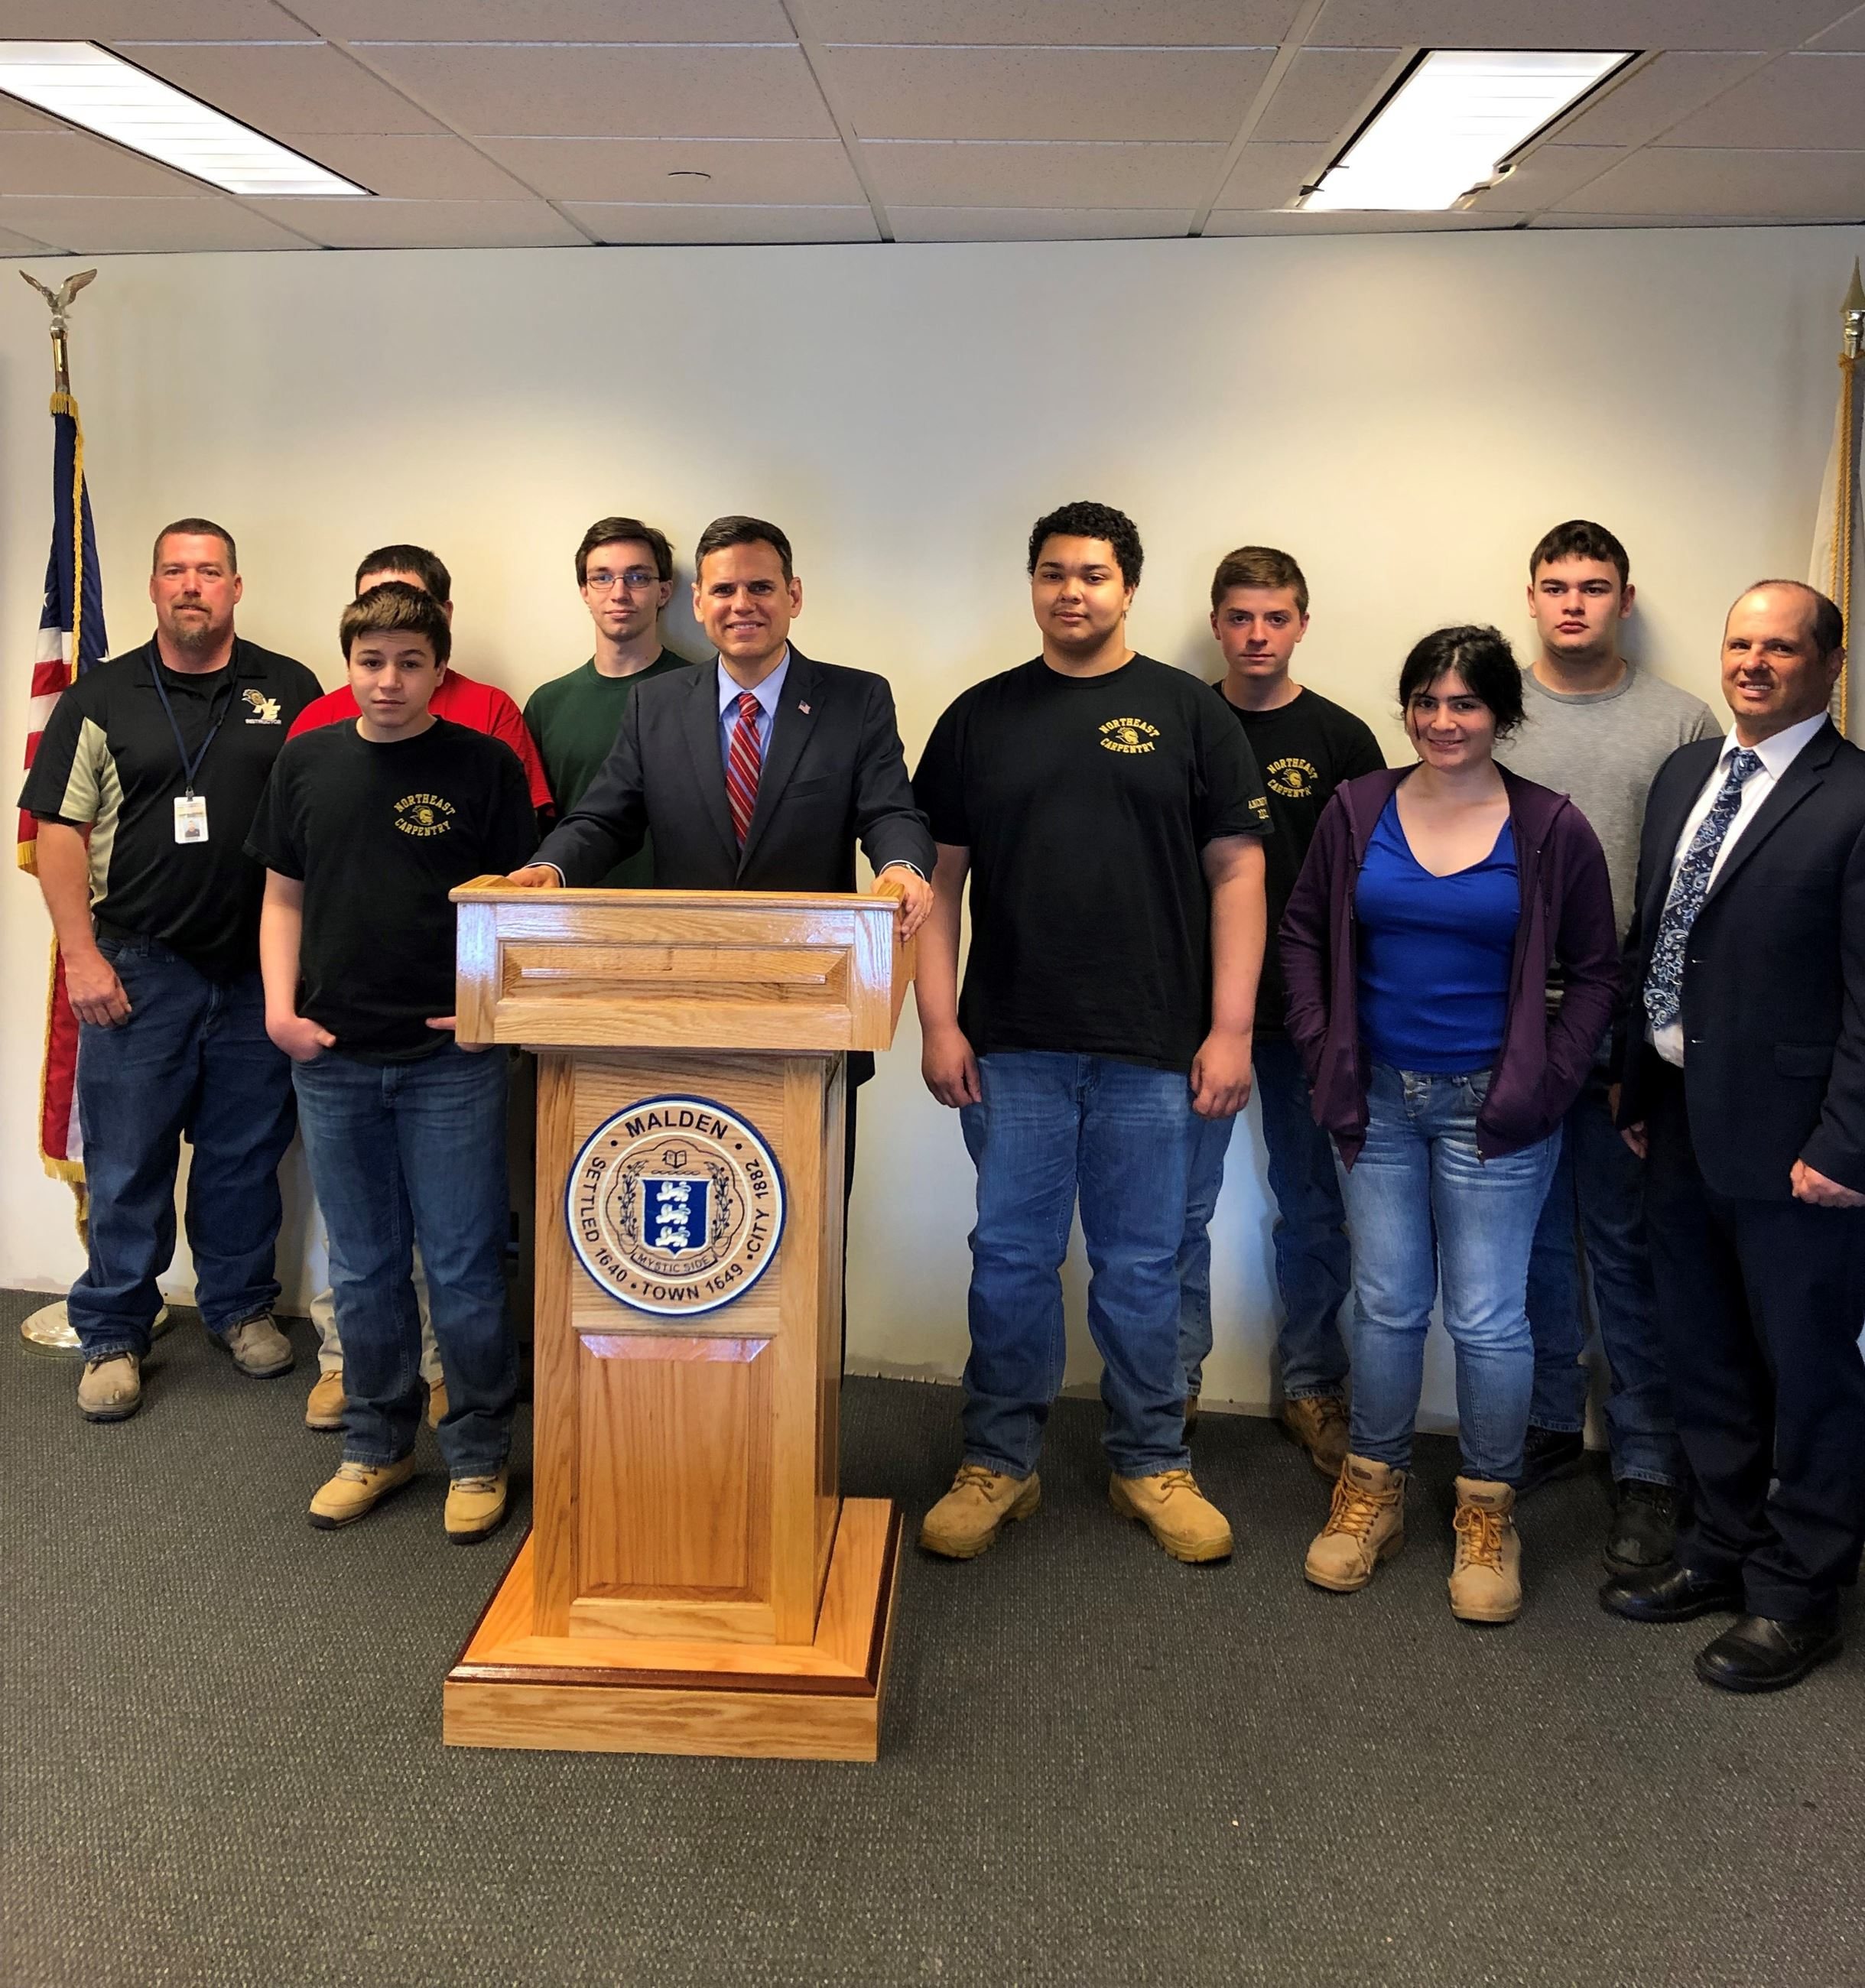 NE Metro Tech Students with Mayor and New Podium